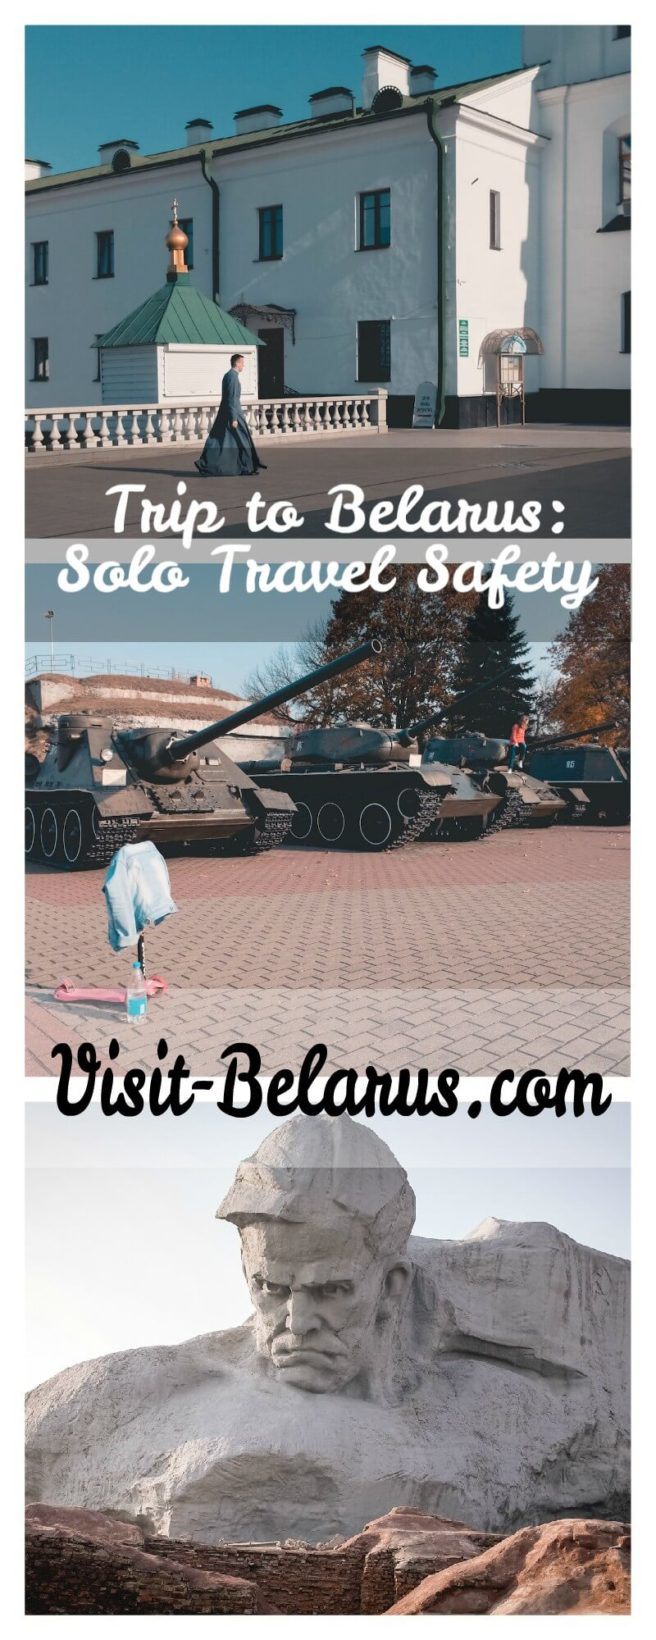 Collage from a trip to Belarus, travel safety